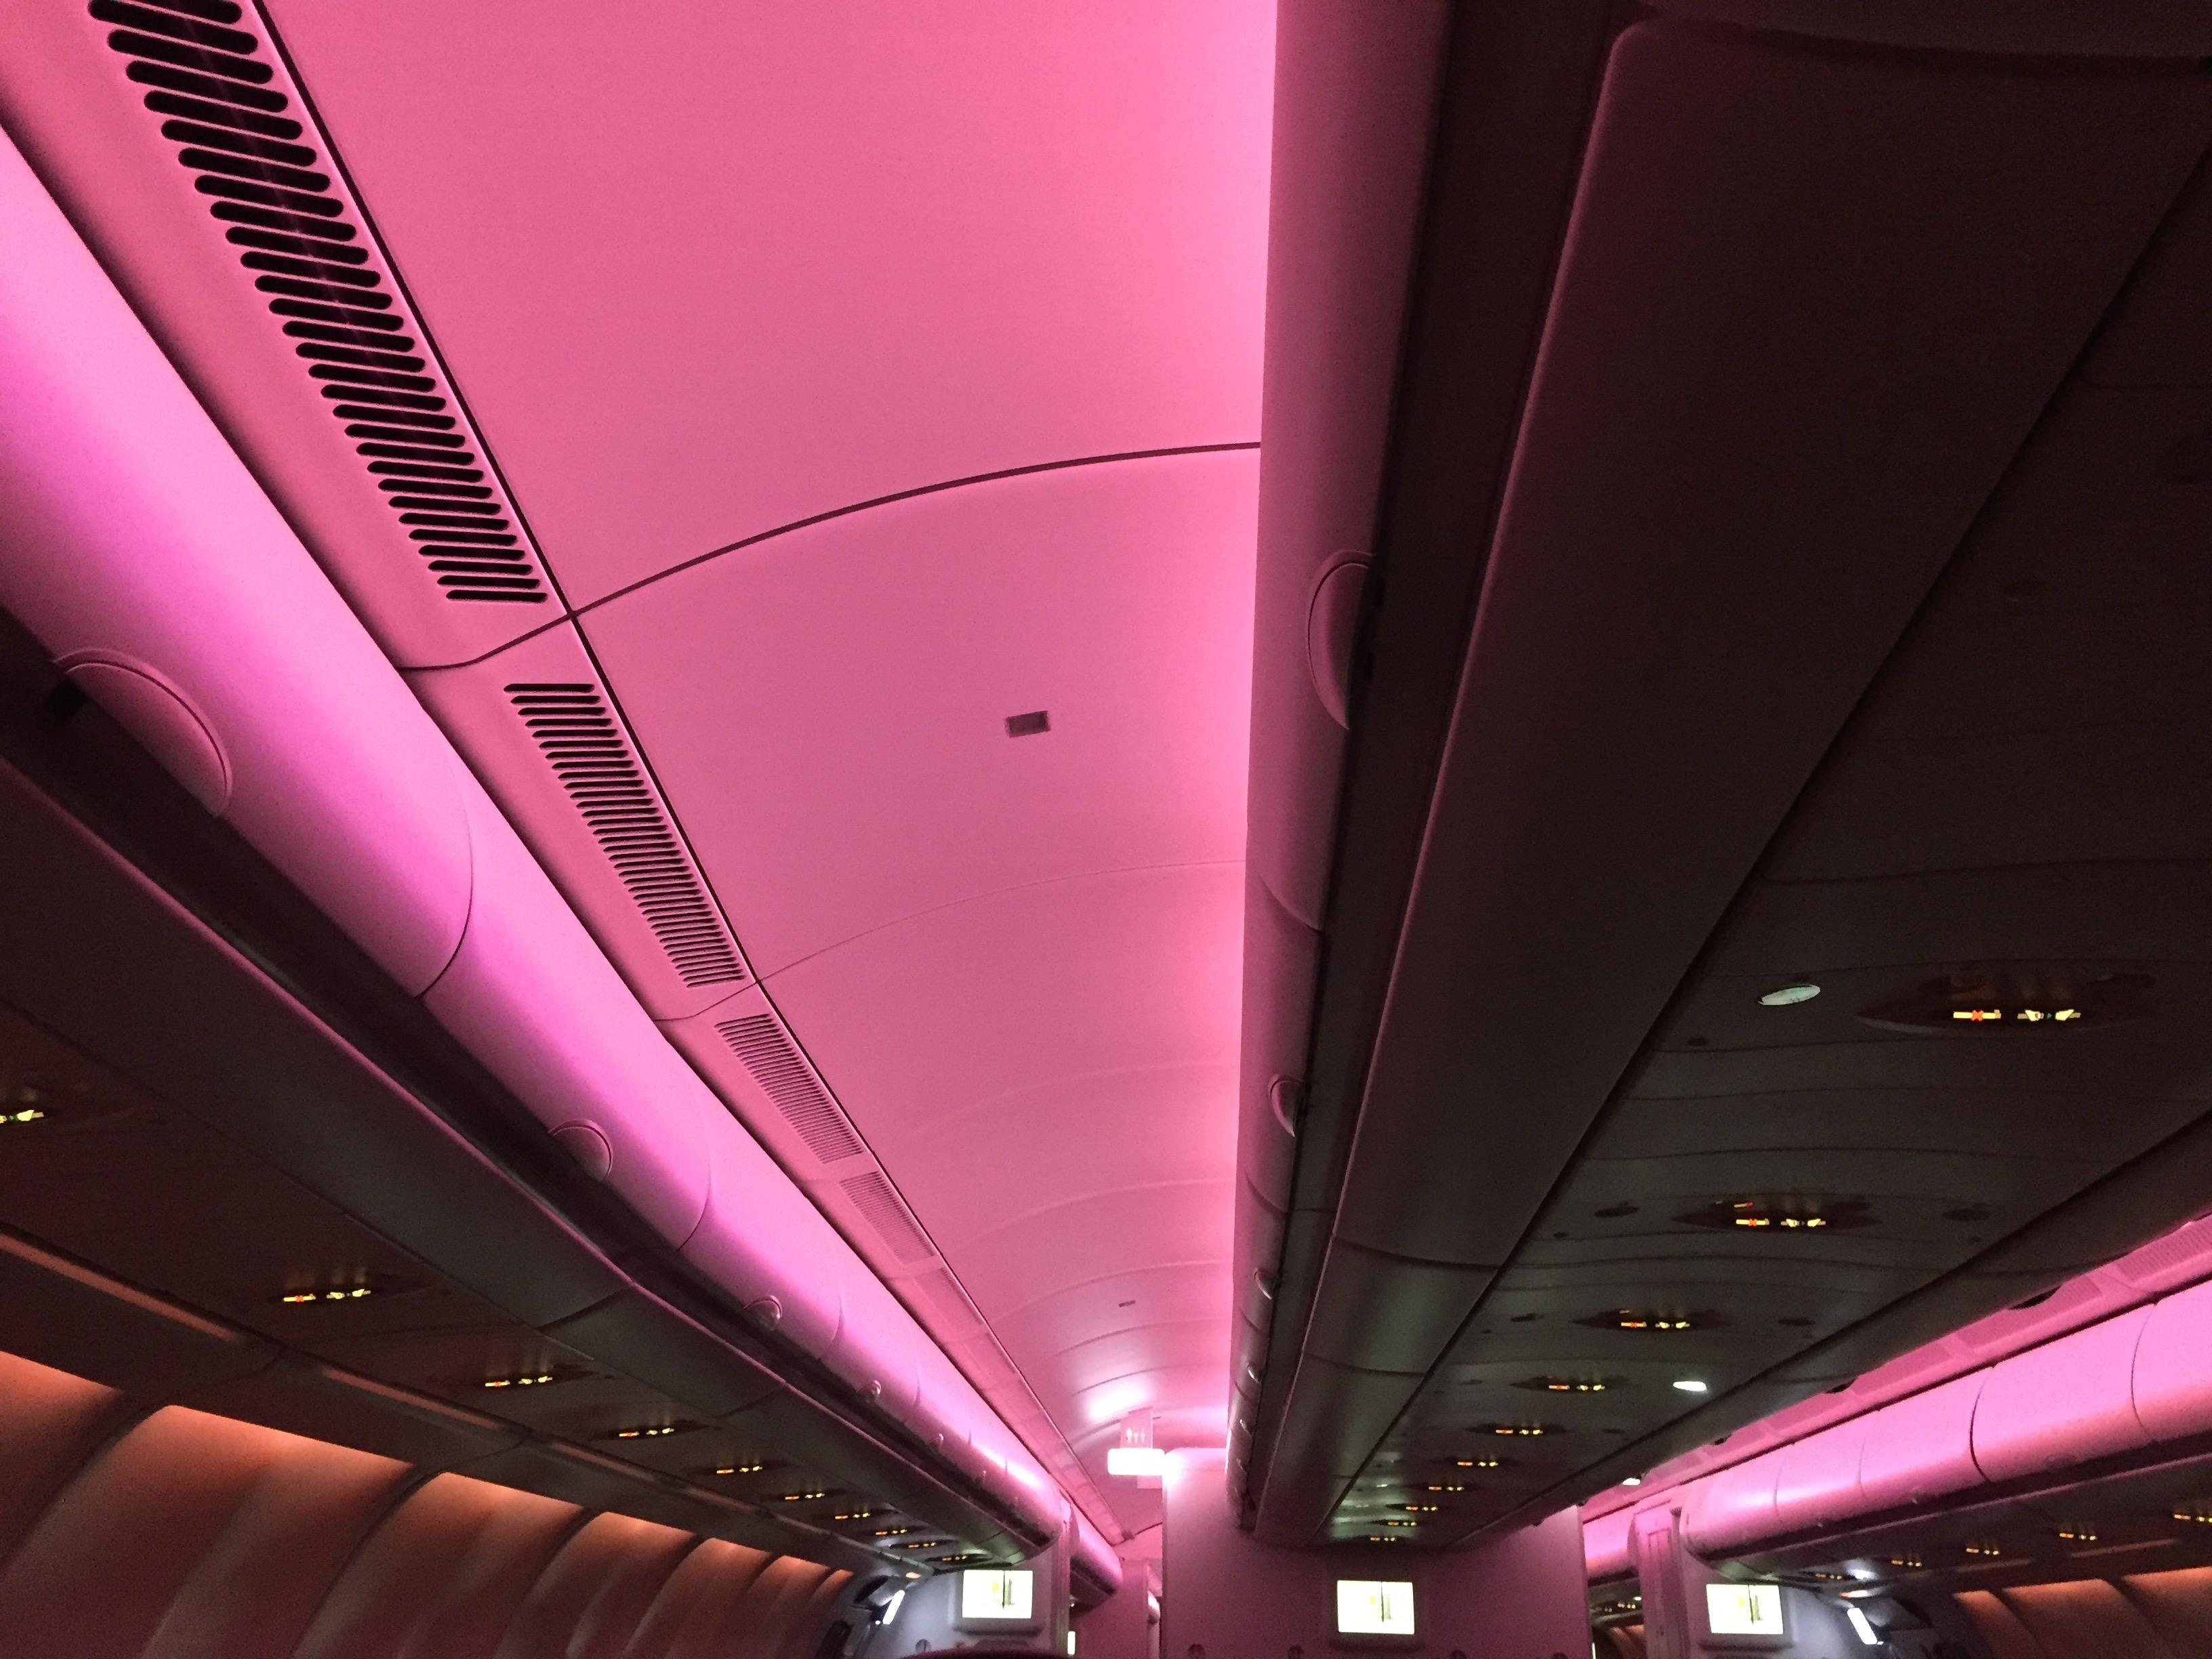 Swiss Economy Montreal-Zurich cabin lighting